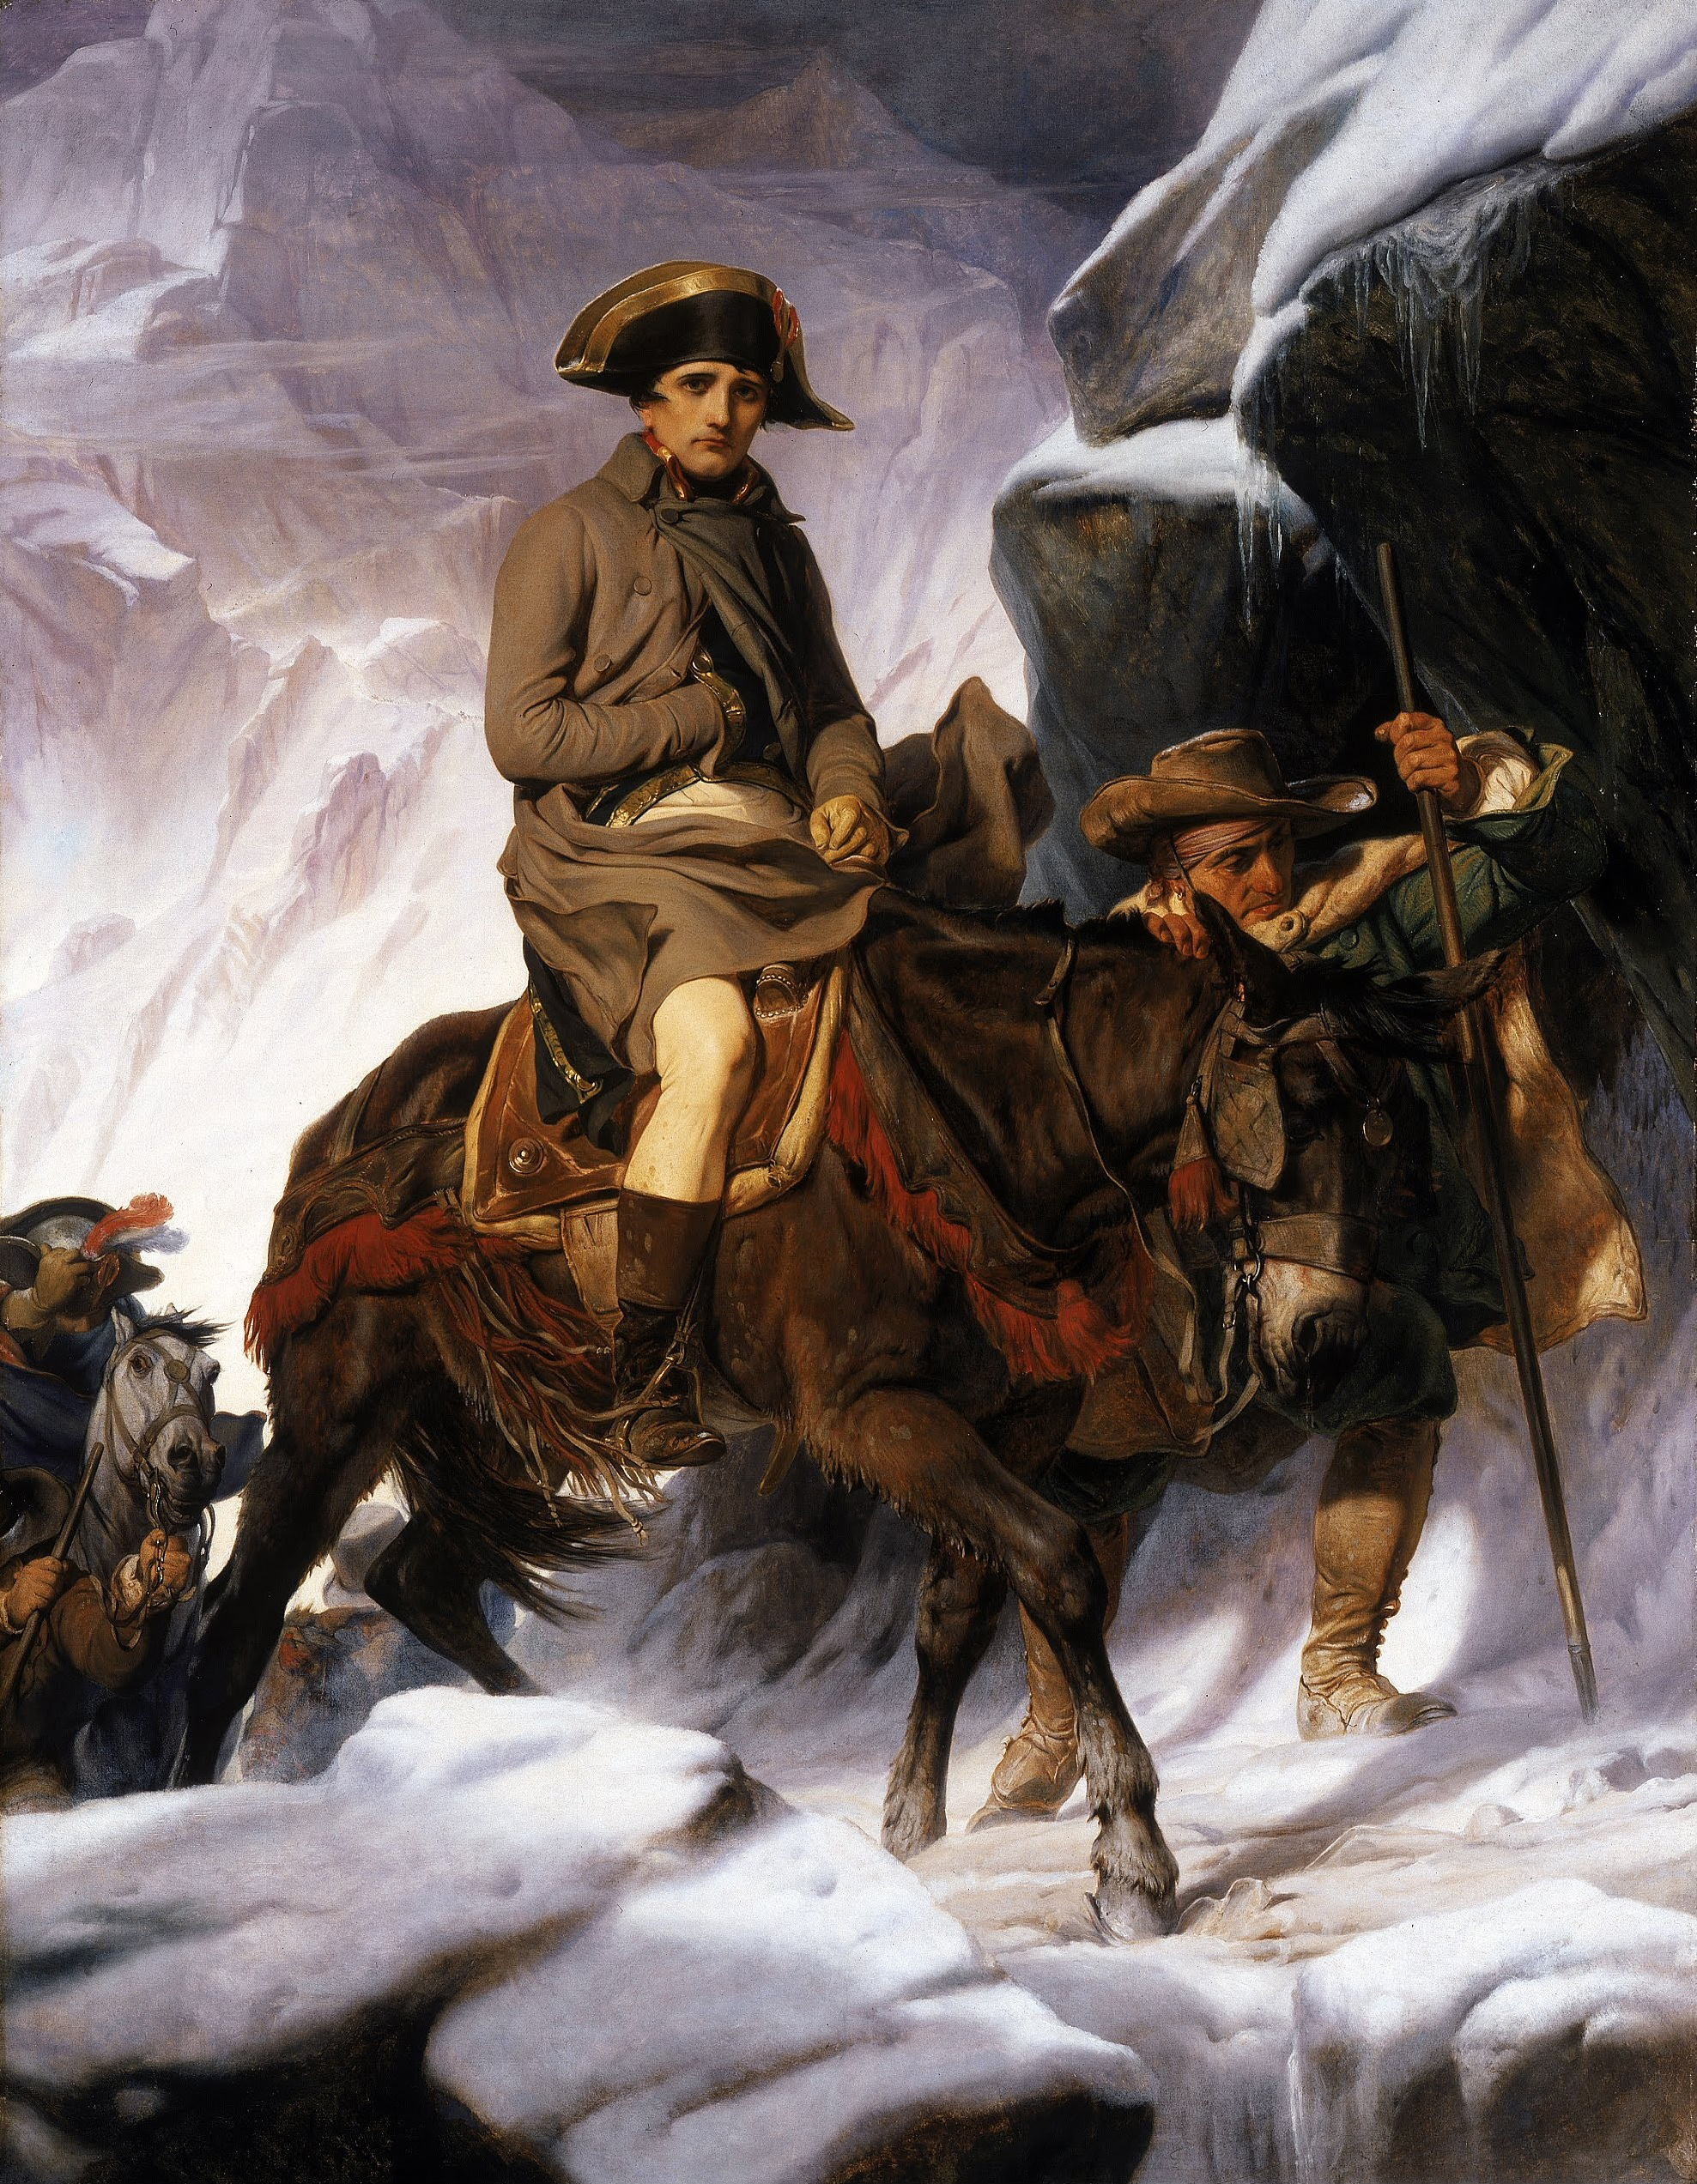 Realistic painting of Napoleon crossing the Alps by Paul Delaroche in 1885